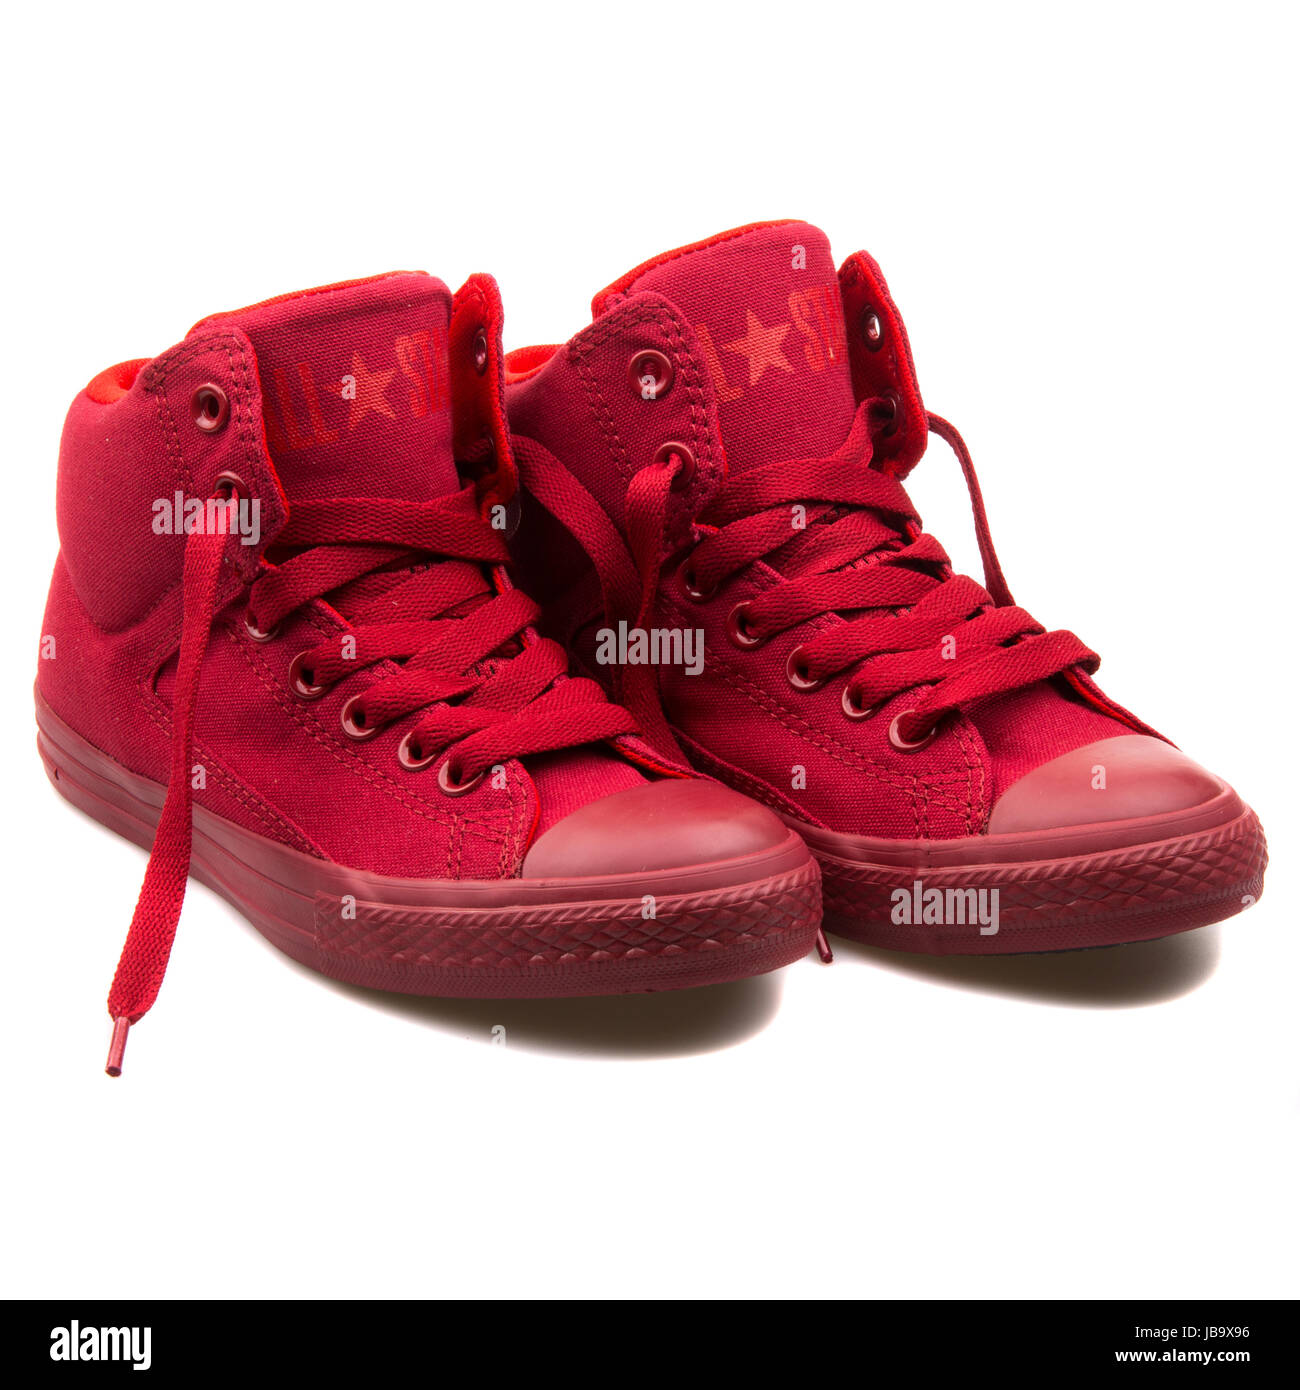 a929c613439 Converse Chuck Taylor All Star High Street Chilli Paste Red Junior s Shoes  - 650120C